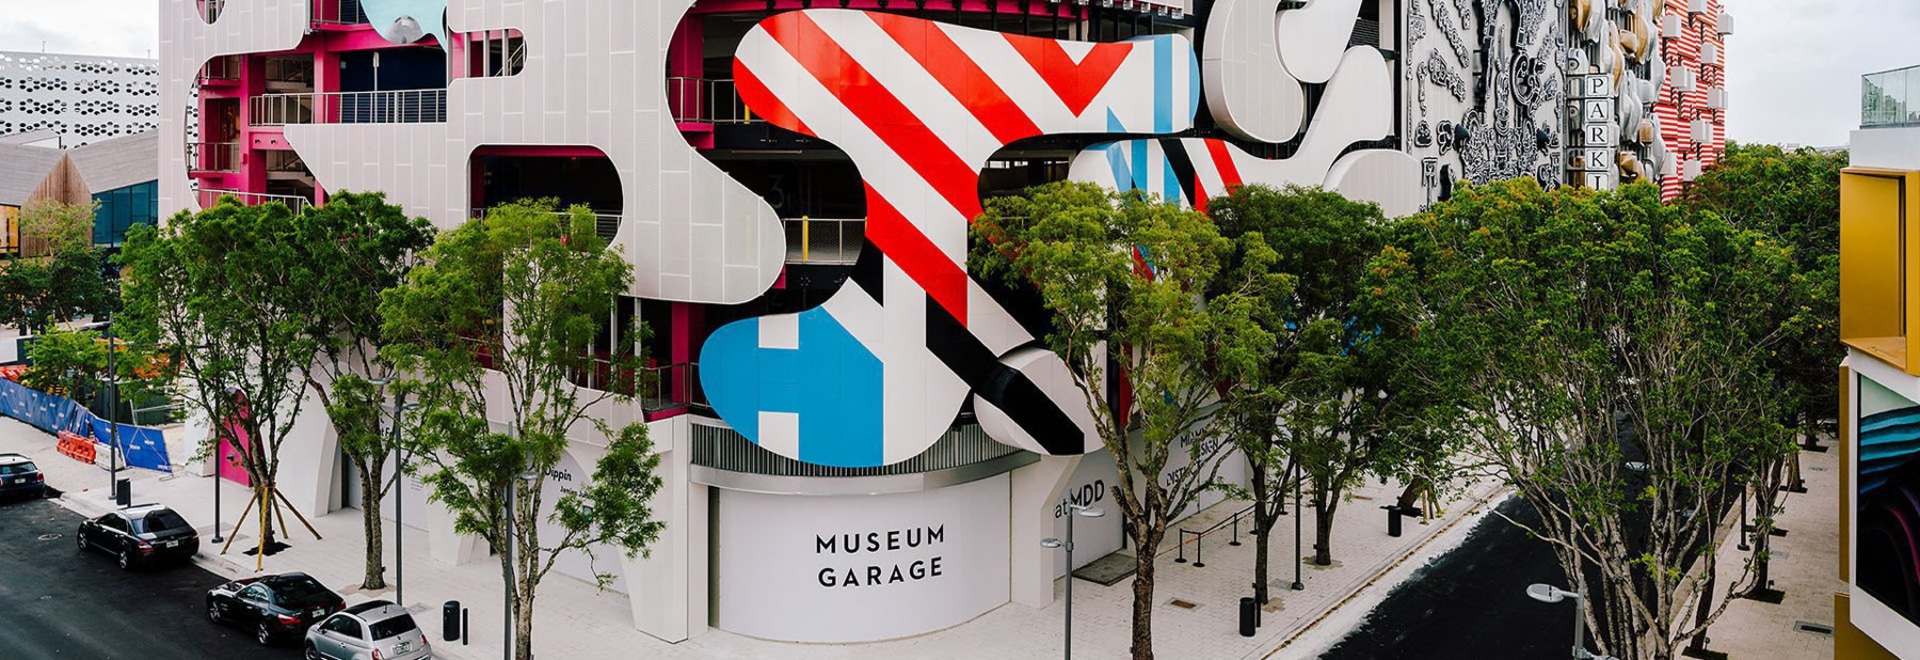 five different studios design 'wildly varied' facades for miami's museum garage